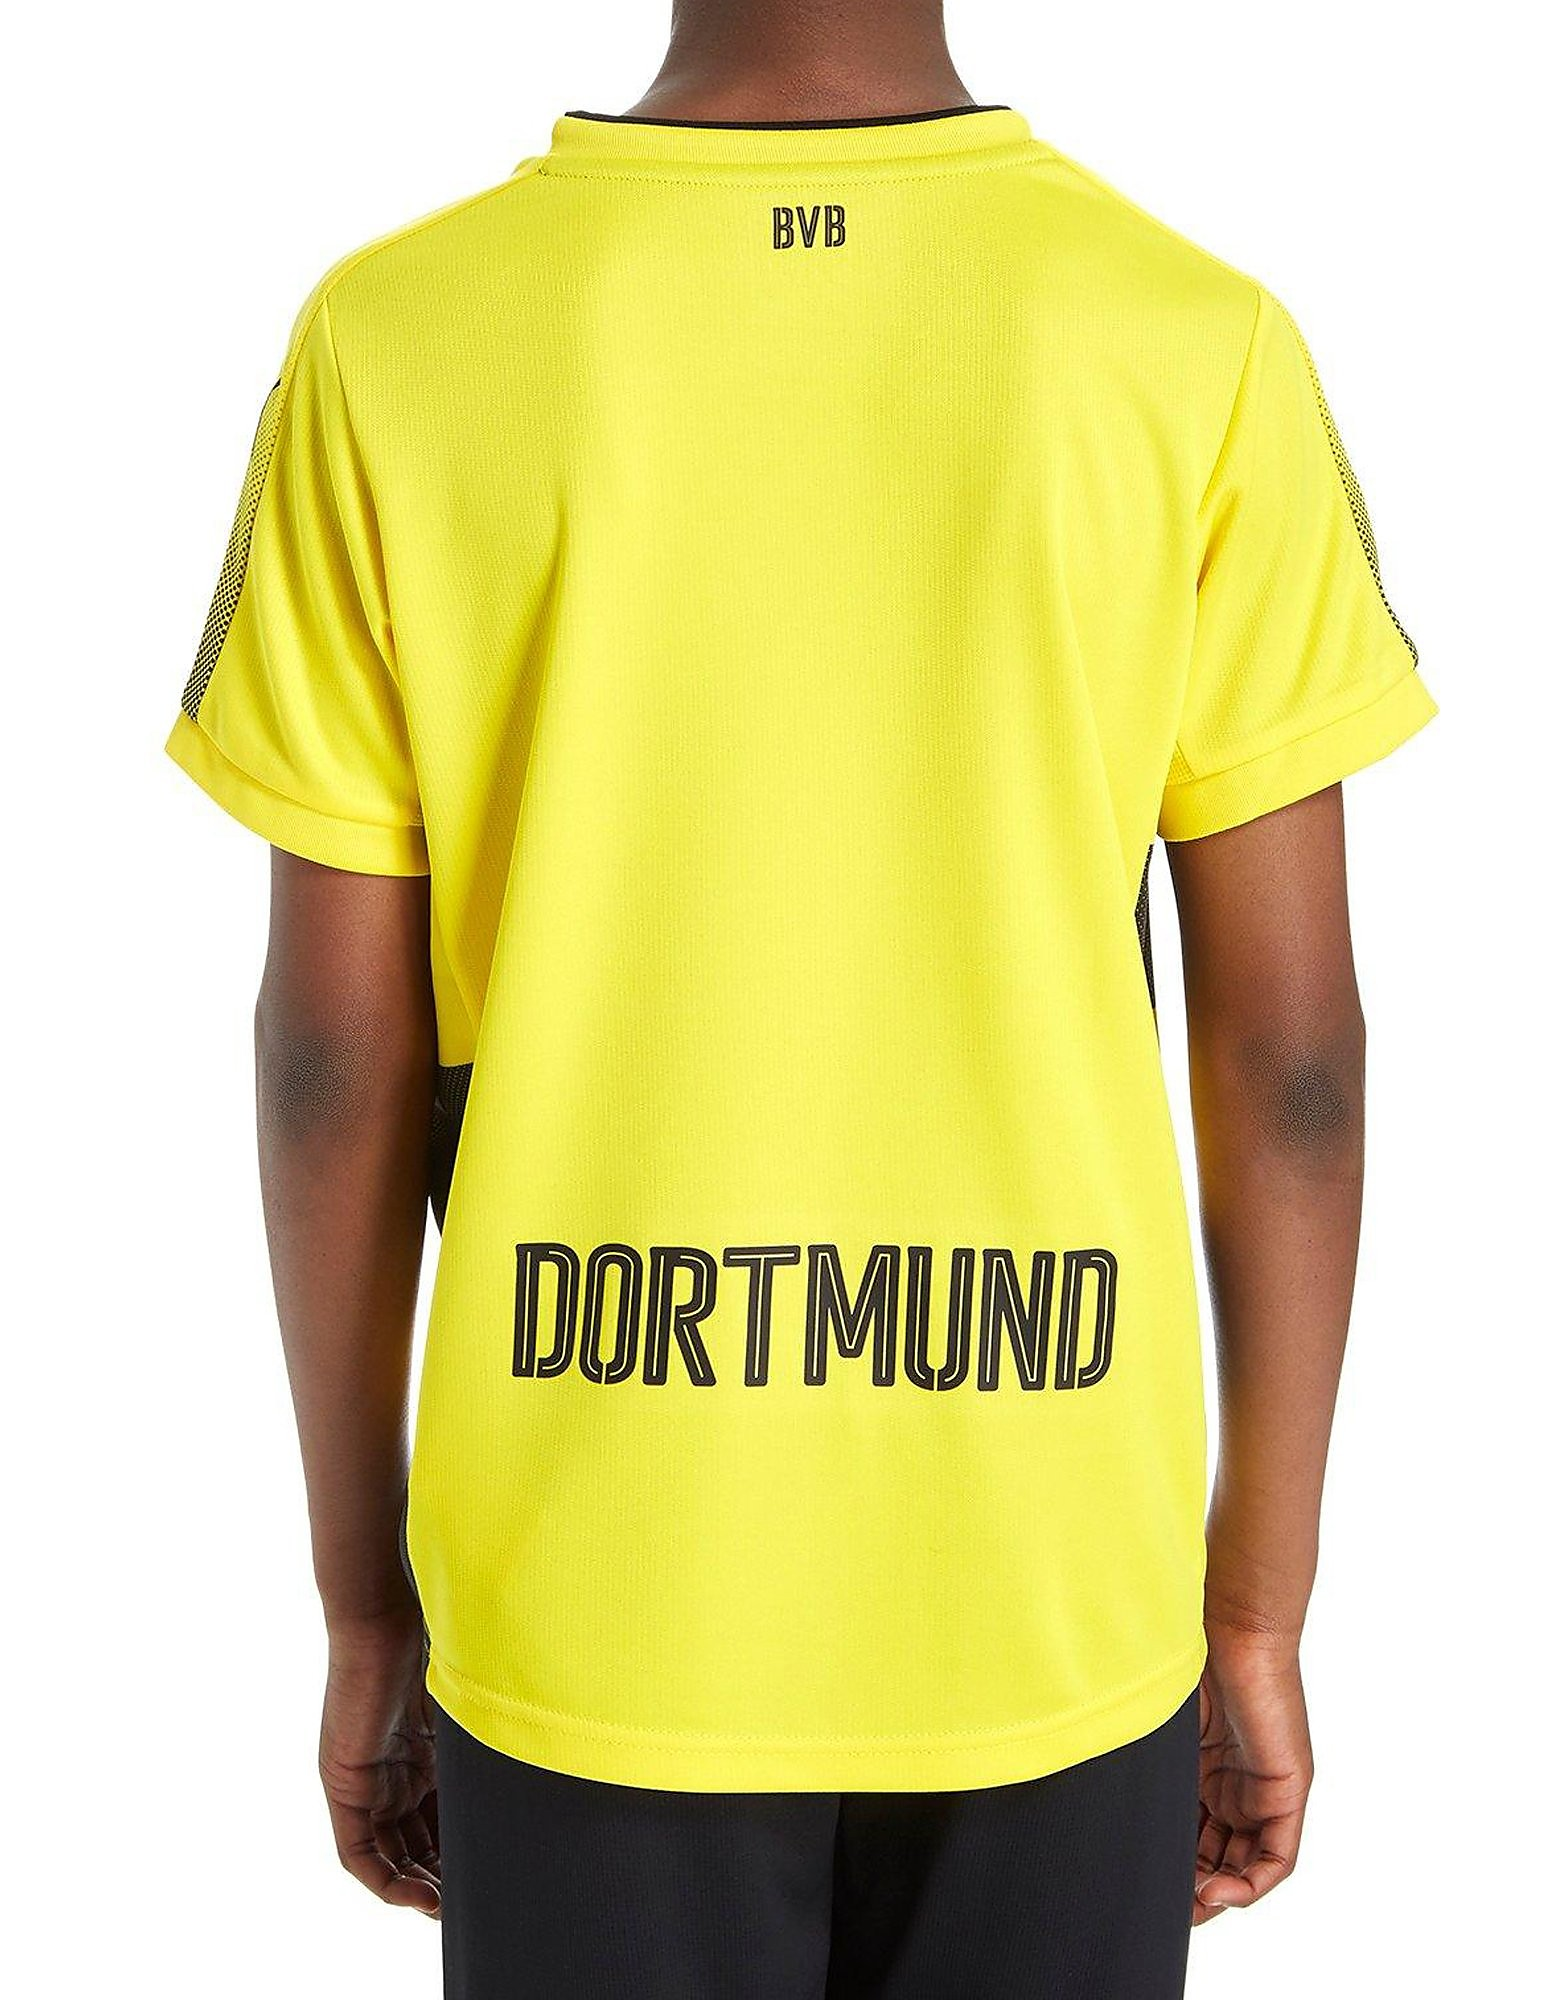 PUMA Borussia Dortmund 2017/18 Home Shirt Junior